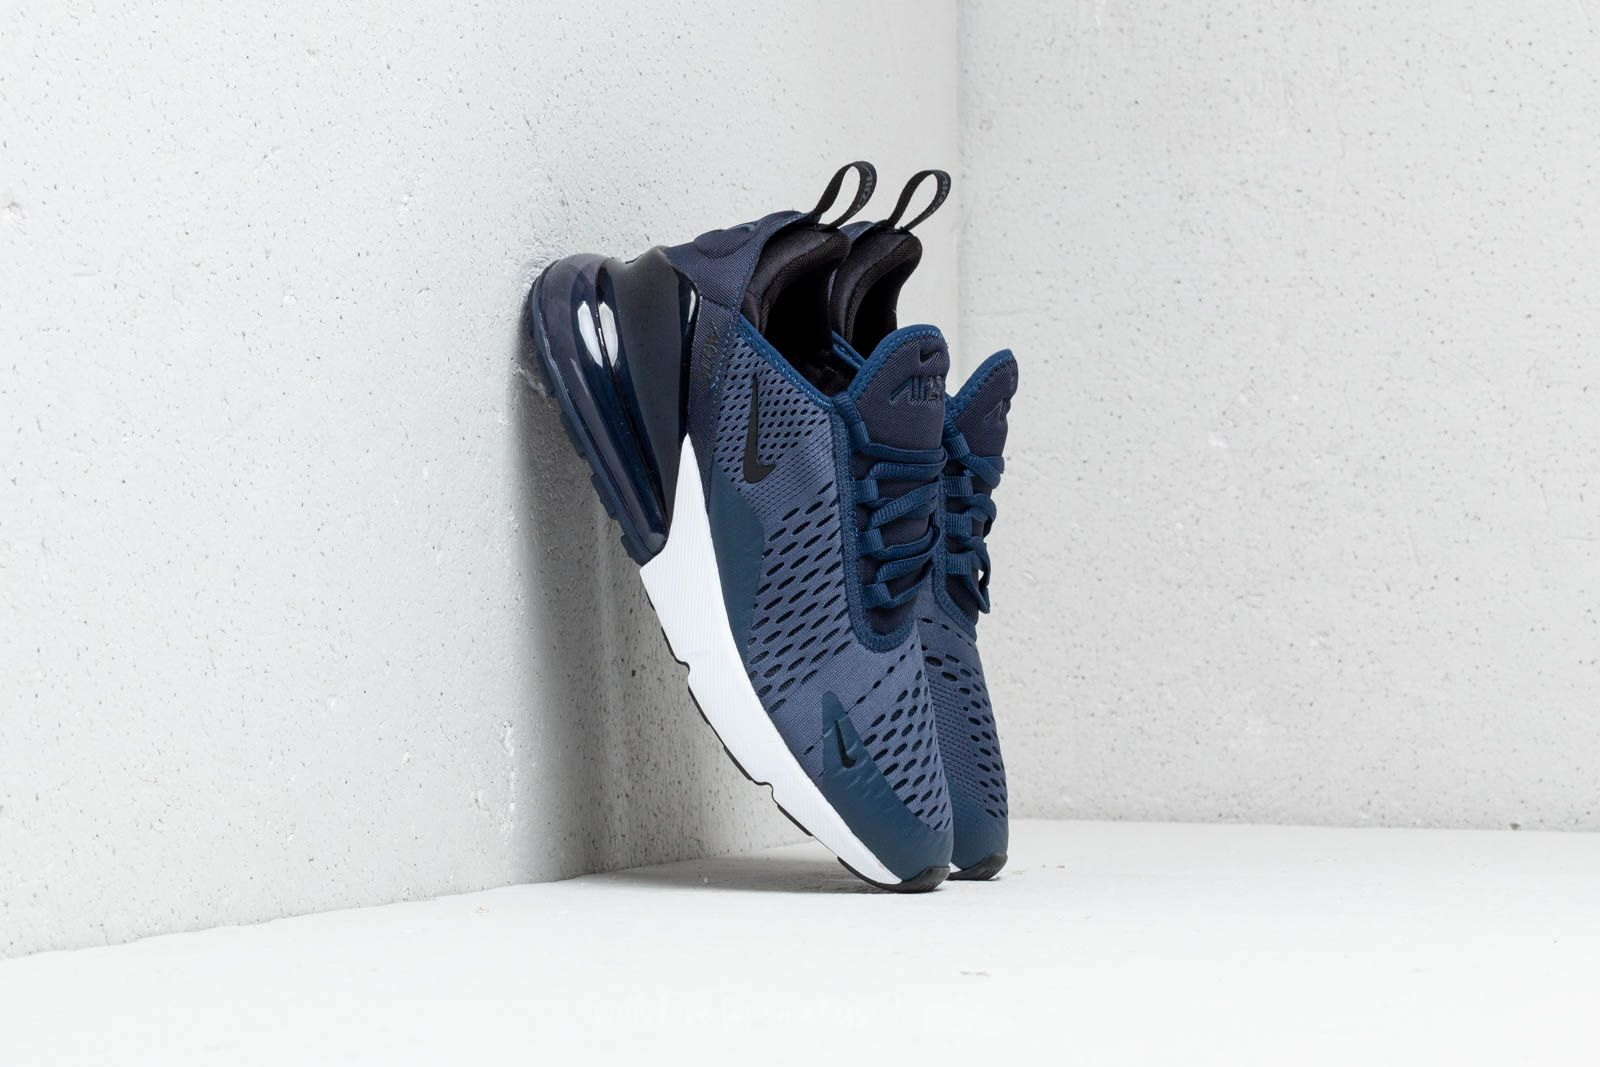 sale retailer db453 fe519 Nike Air Max 270 (GS). Midnight Navy  Black-White